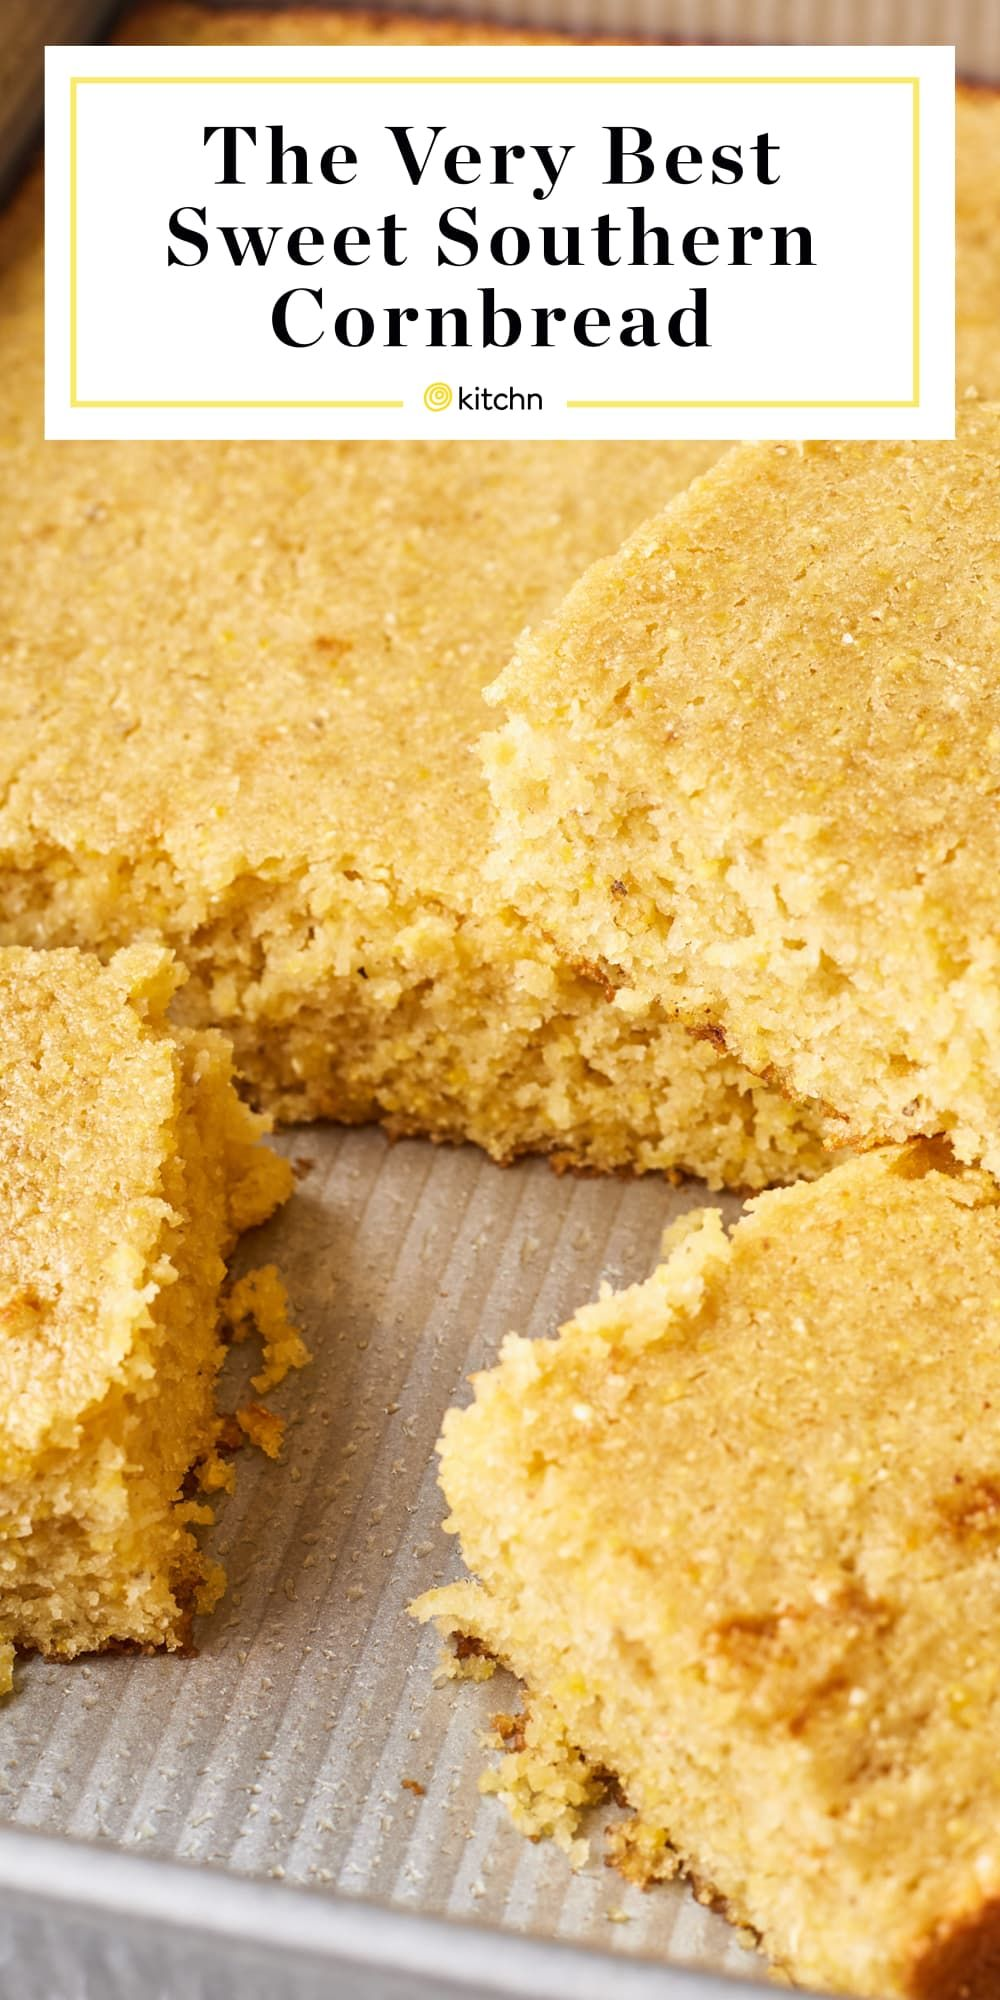 How To Make The Very Best Sweet Cornbread Recipe Sweet Cornbread Cornbread Recipes